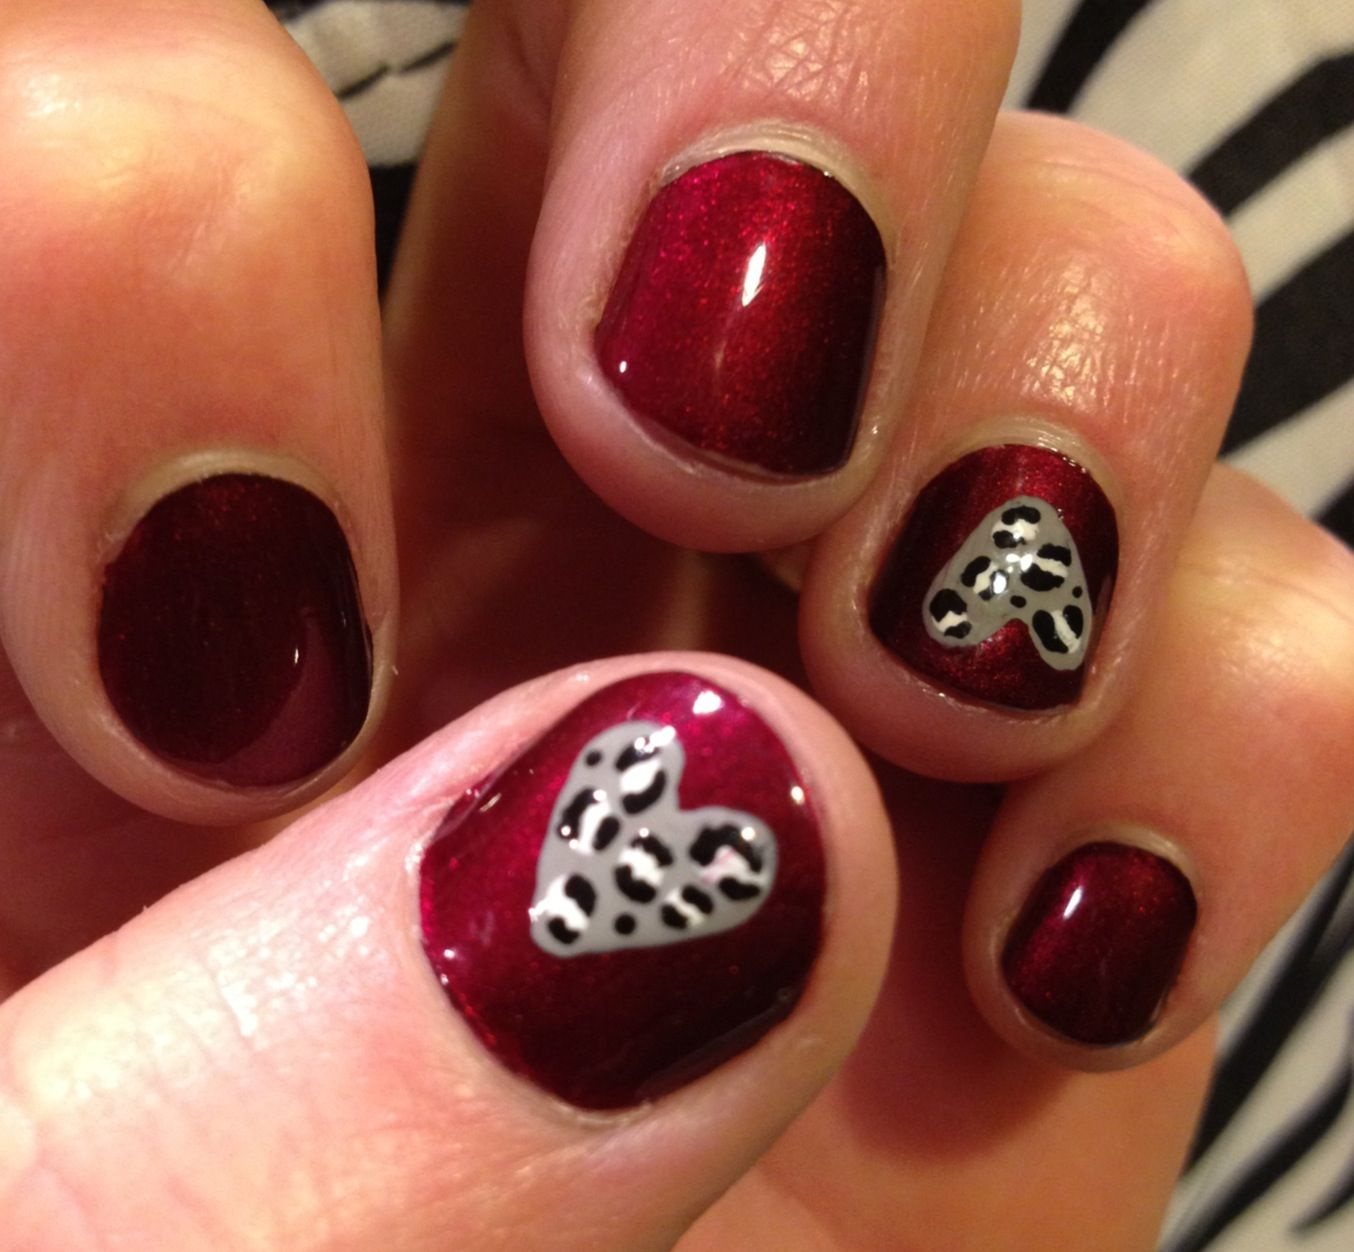 Snow leopard hearts with Sally Hansen Insta-Dry color Wined Up